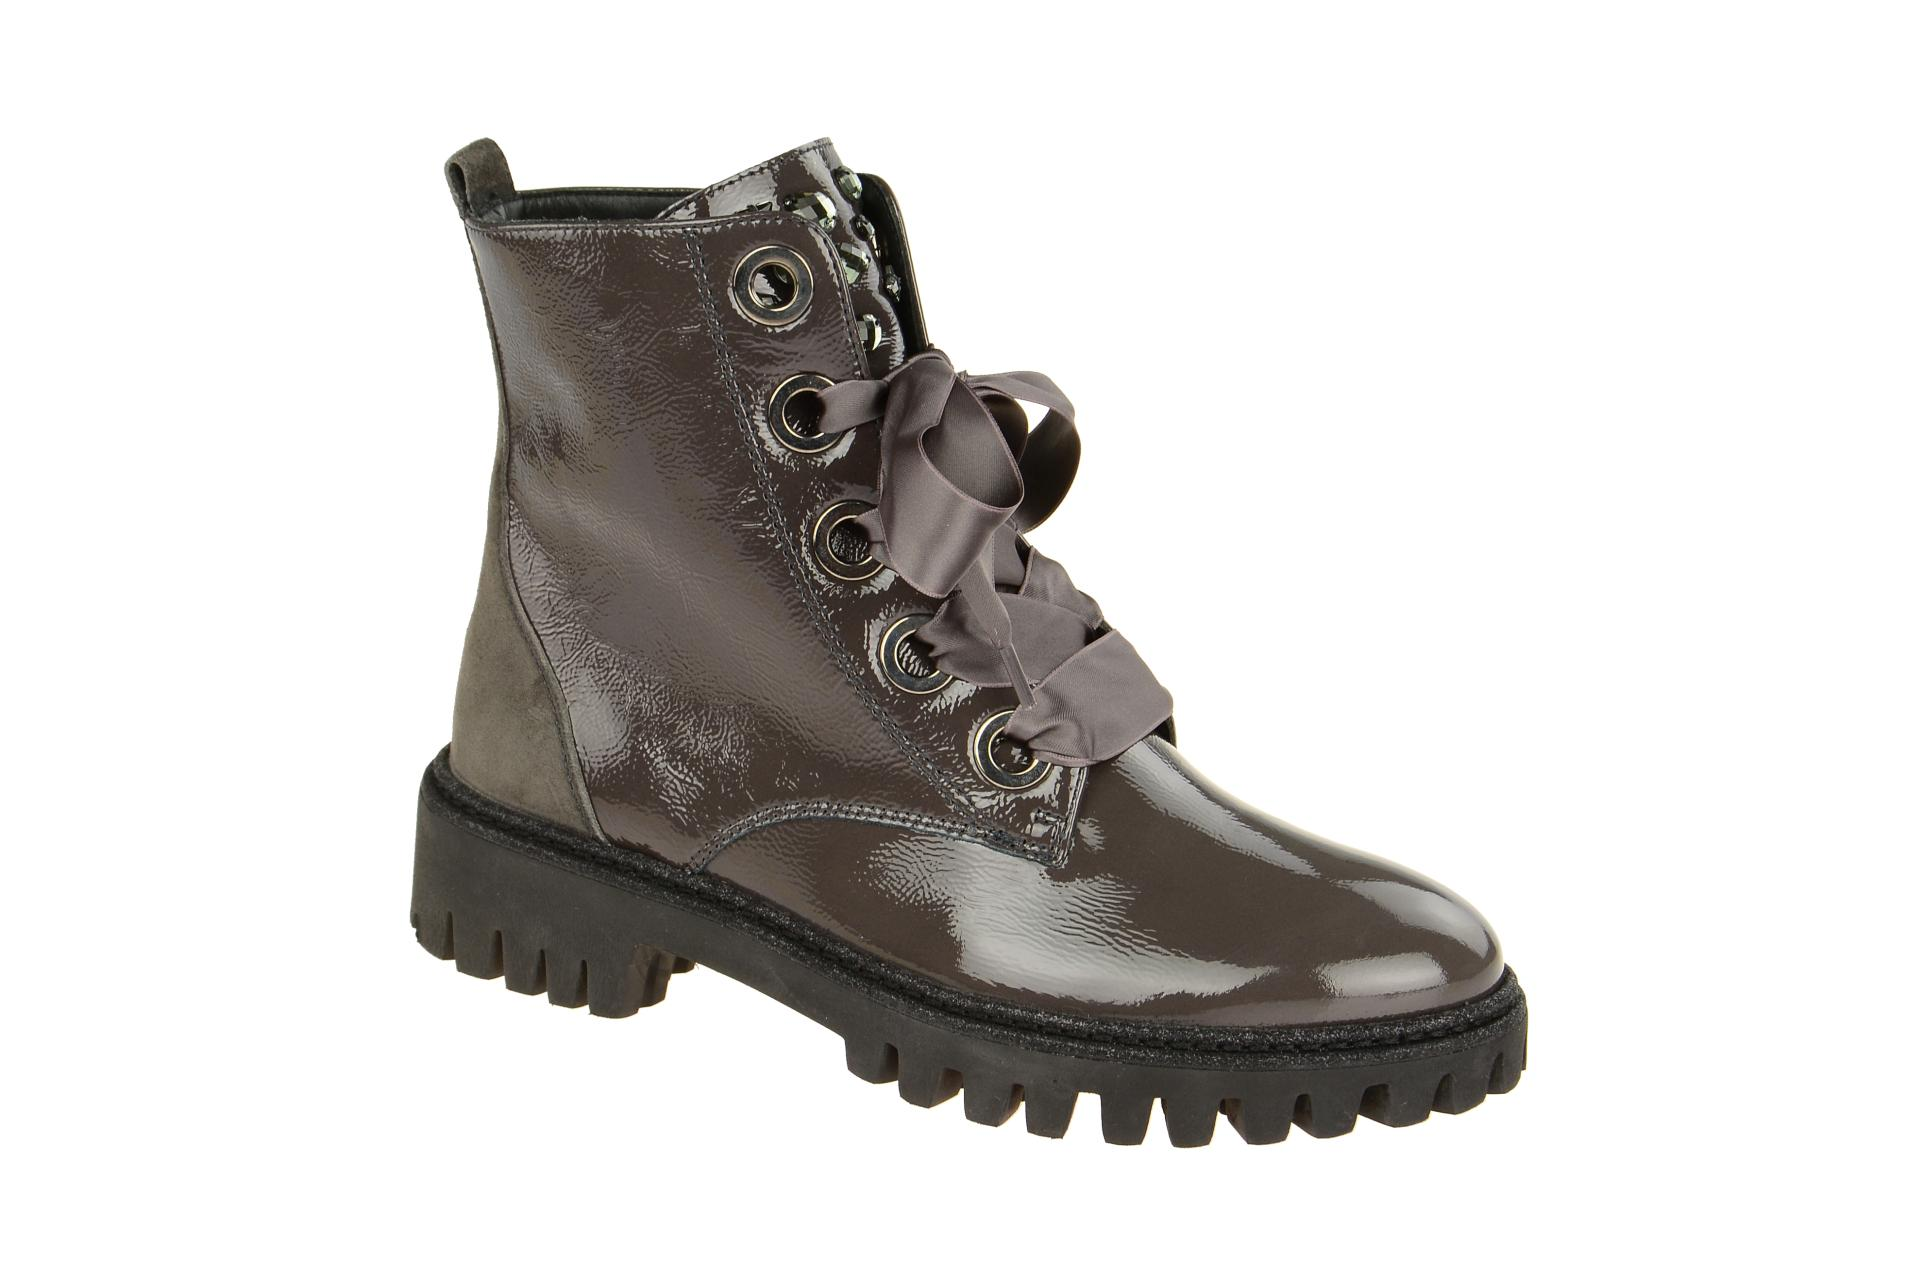 super quality special for shoe official Paul Green 9223 Stiefel grau Lack Gr 3